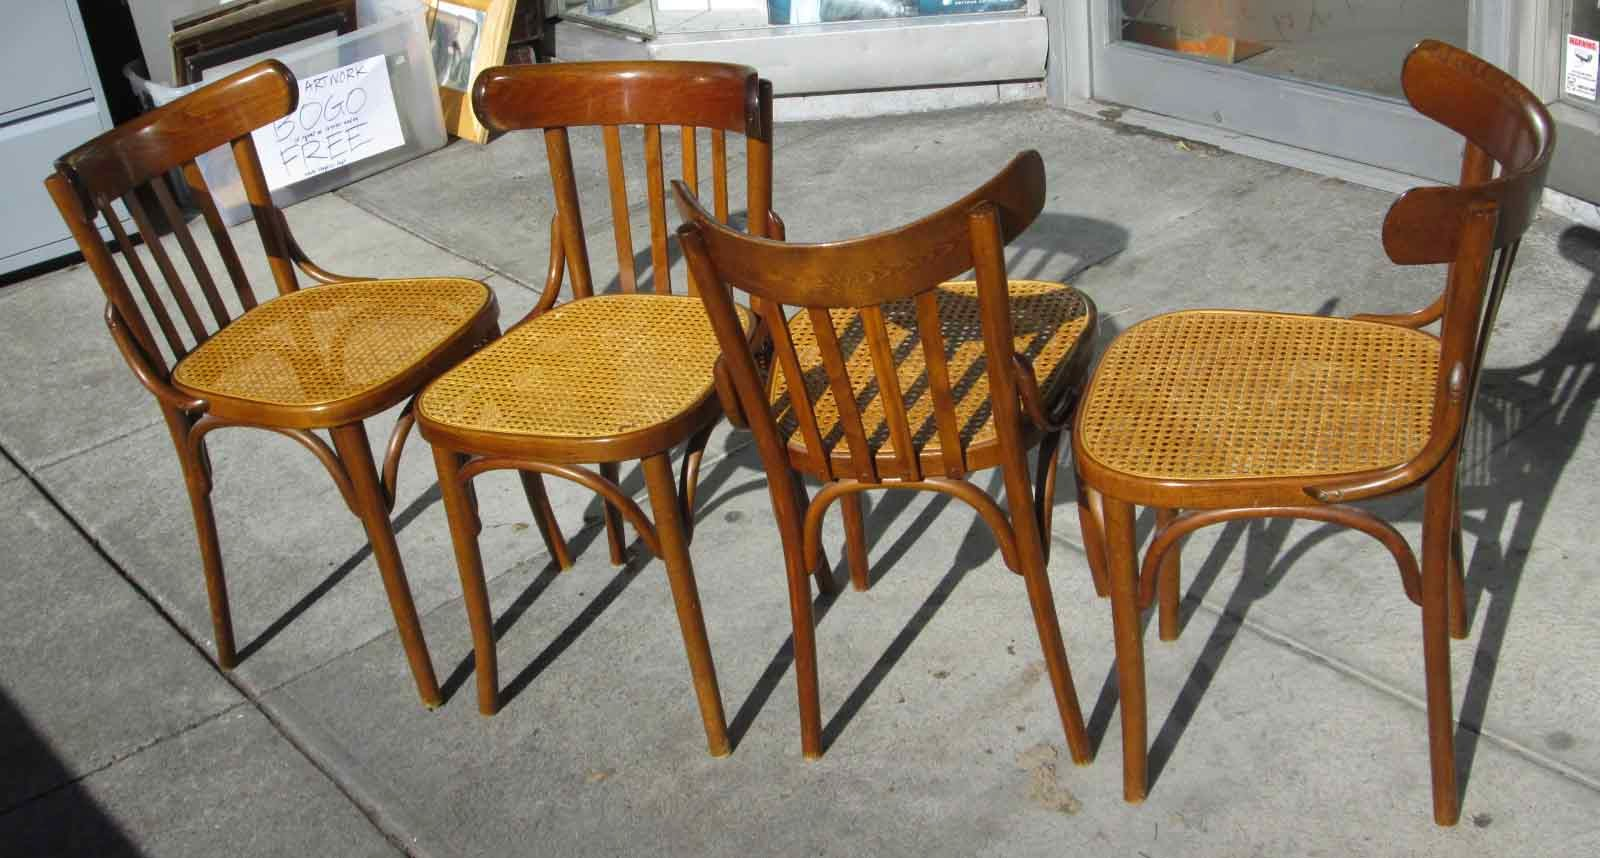 Cane Bottom Chairs Molded Plywood Chair Uhuru Furniture And Collectibles Sold Set Of